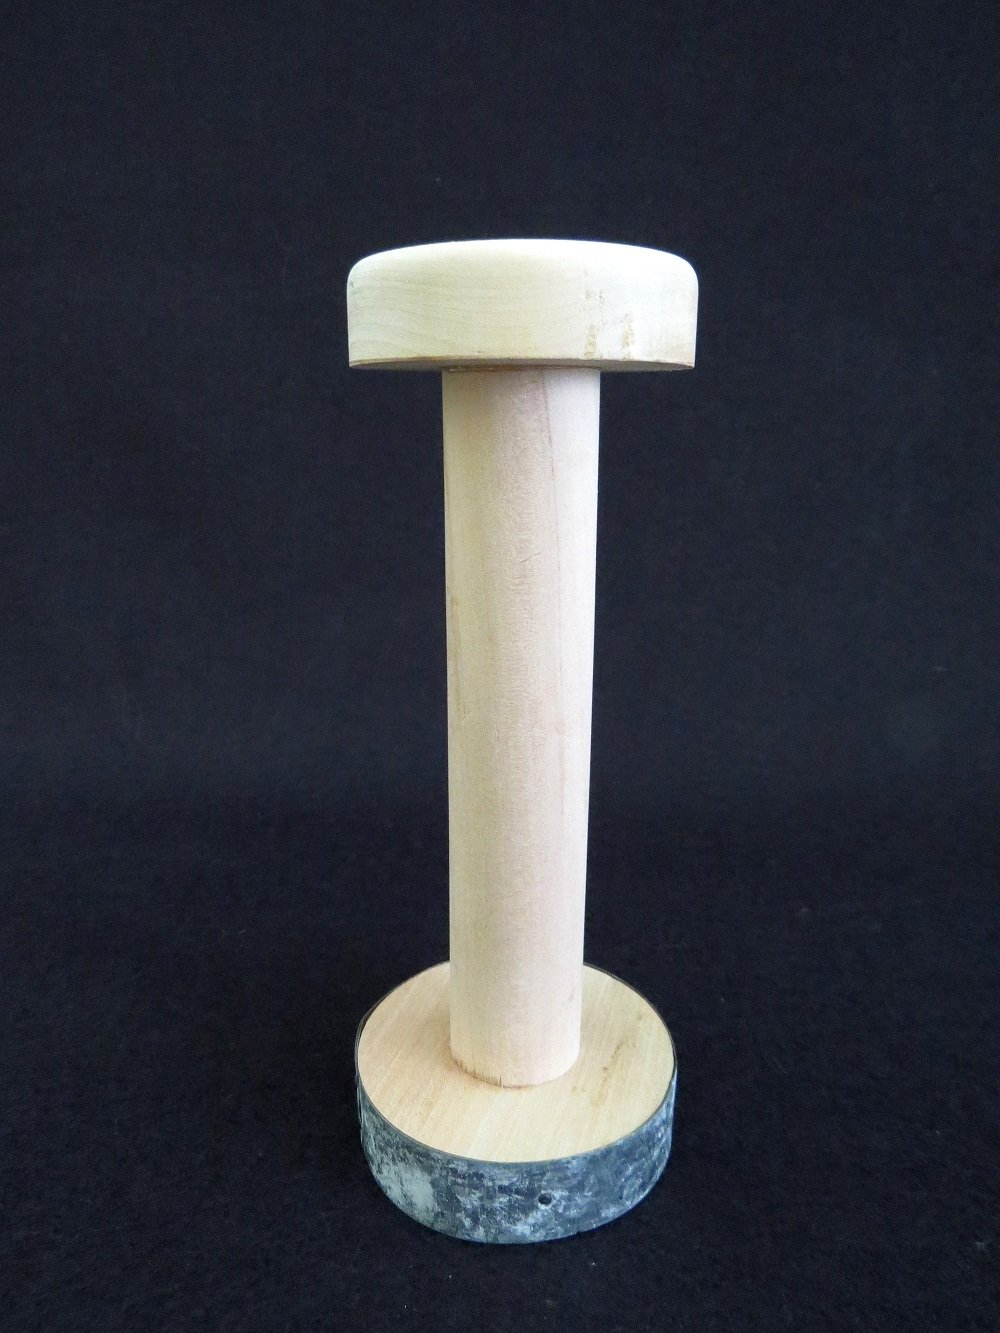 7-1/2 Tall wooden base